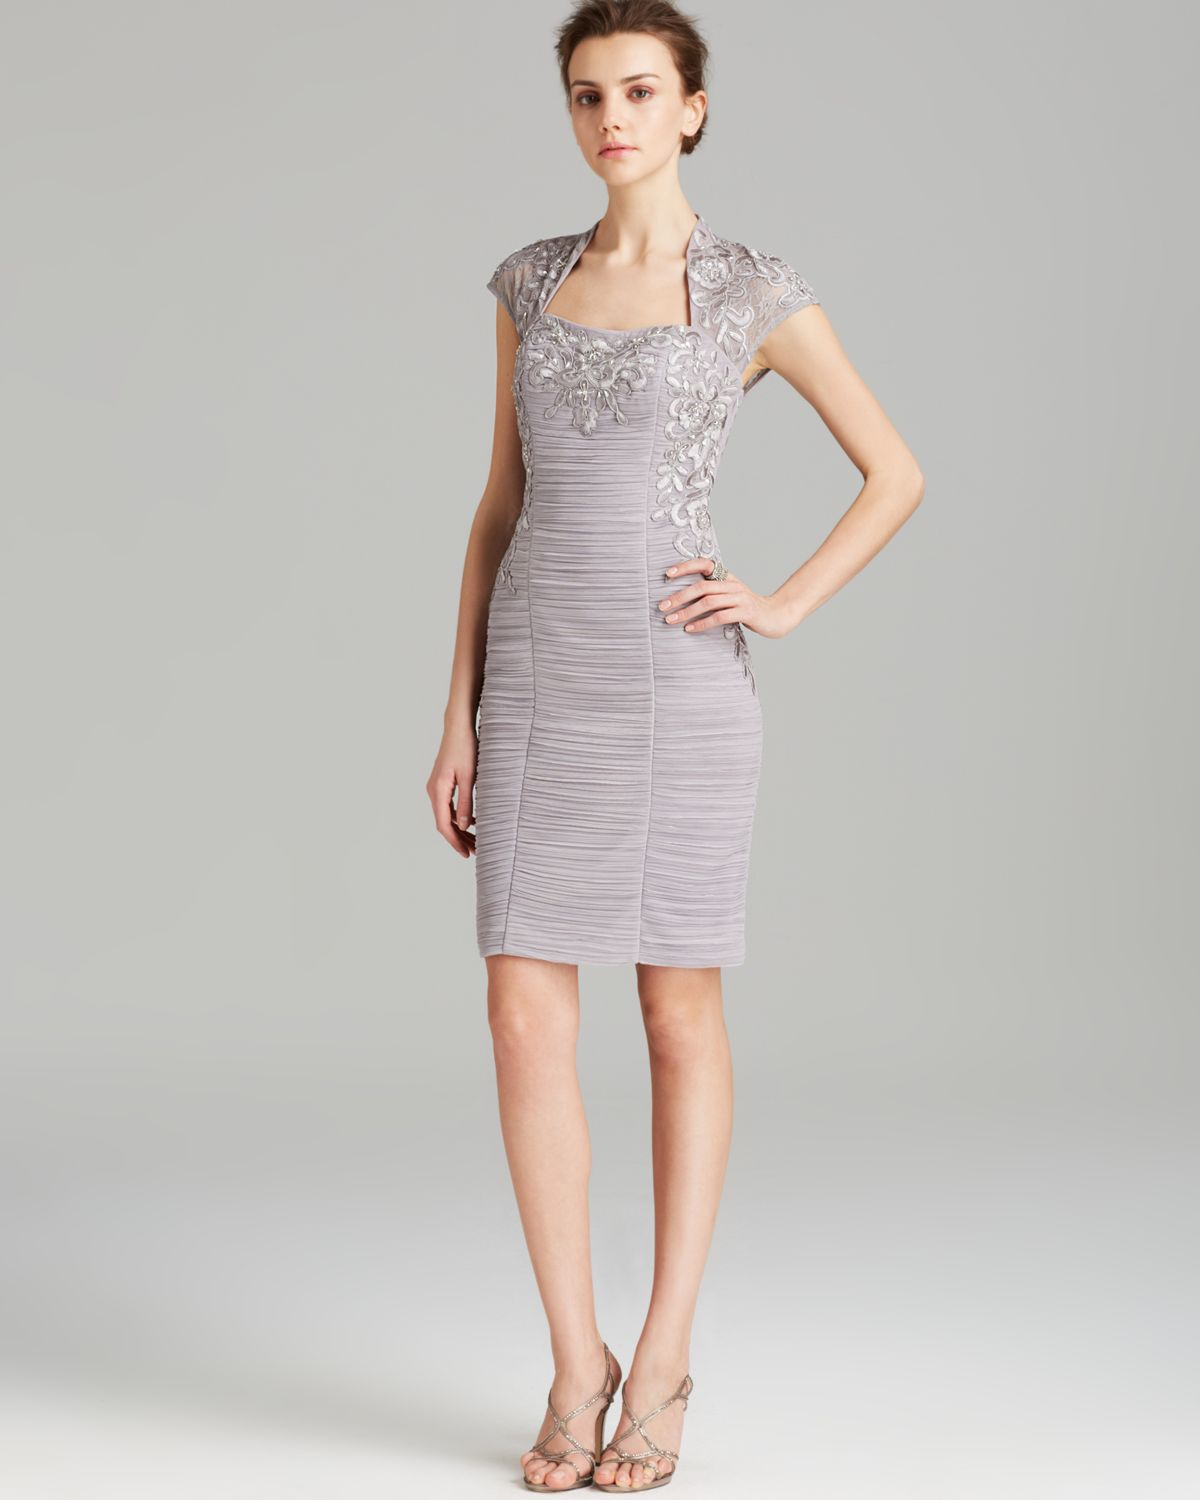 Dress Square Double Thai 100 Viscose: Sue Wong Dress Square Neck Cap Sleeve Beaded In Gray